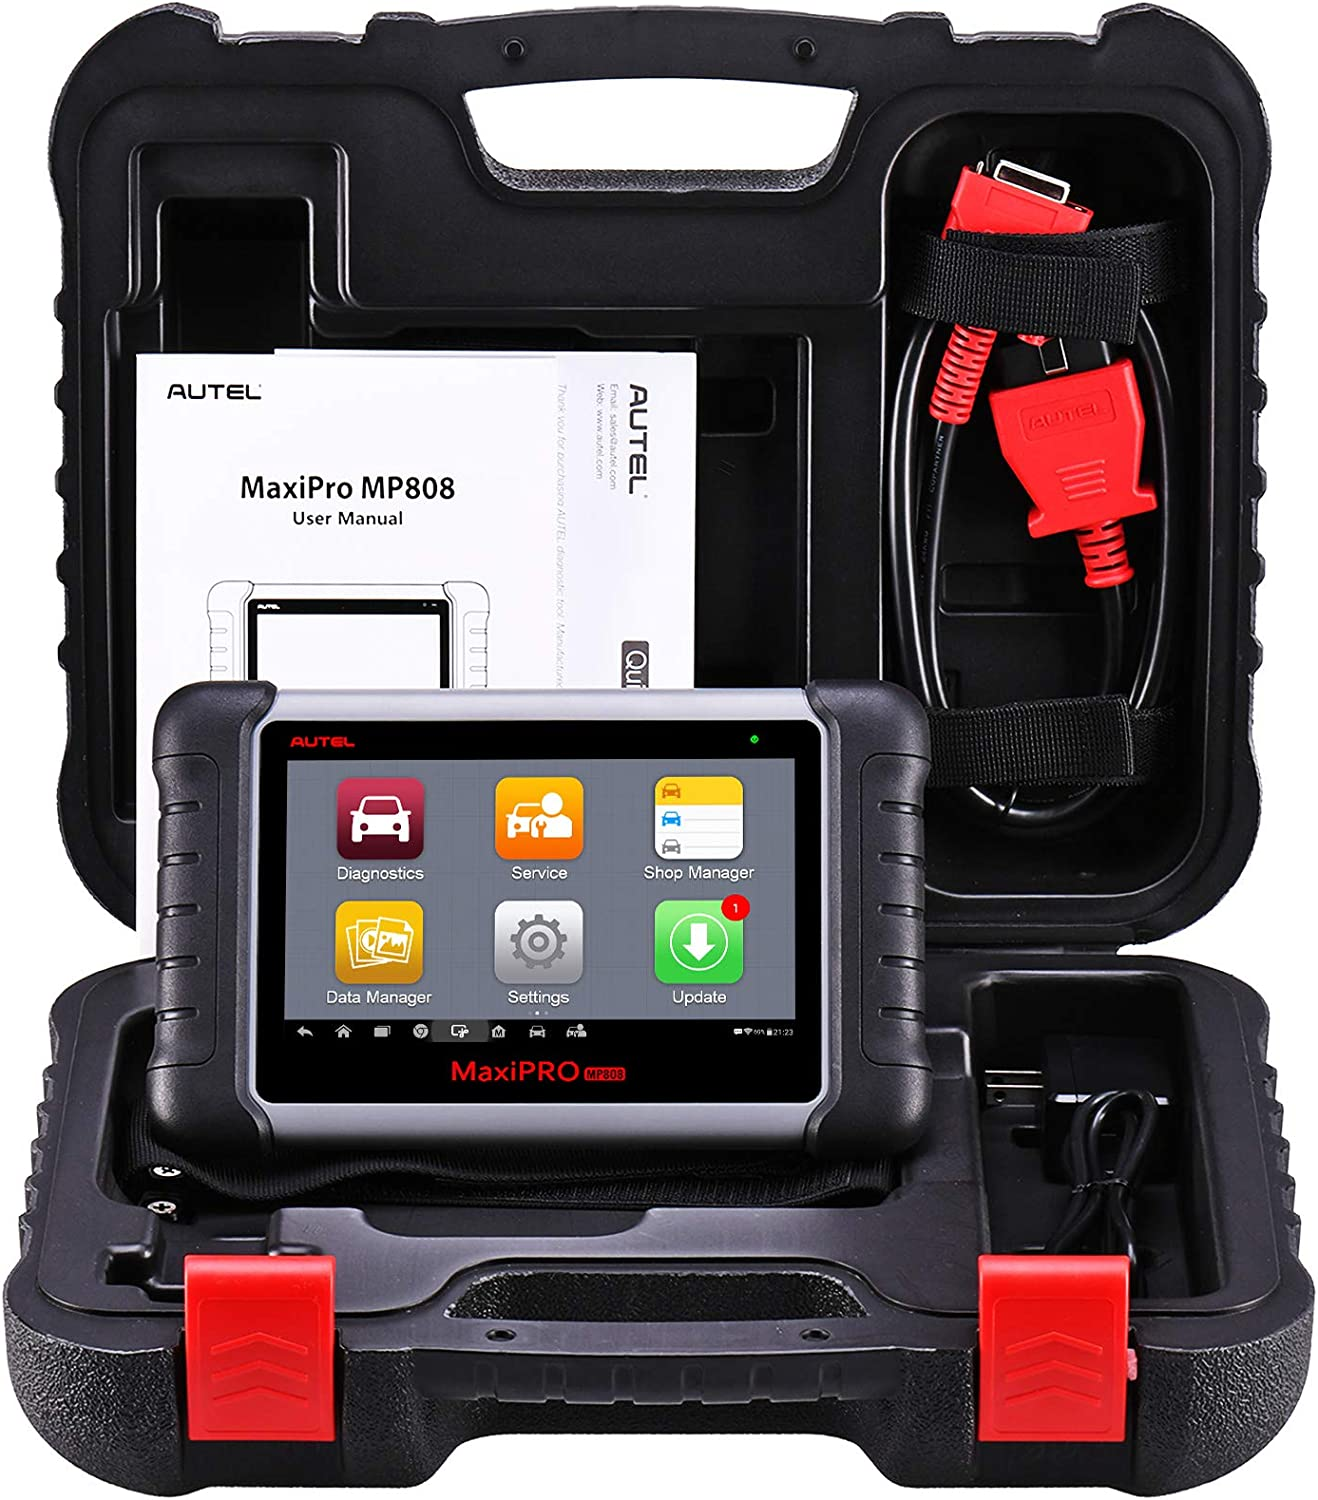 Best OBD2 Scanner For BMW-Autel MaxiPRO MP808